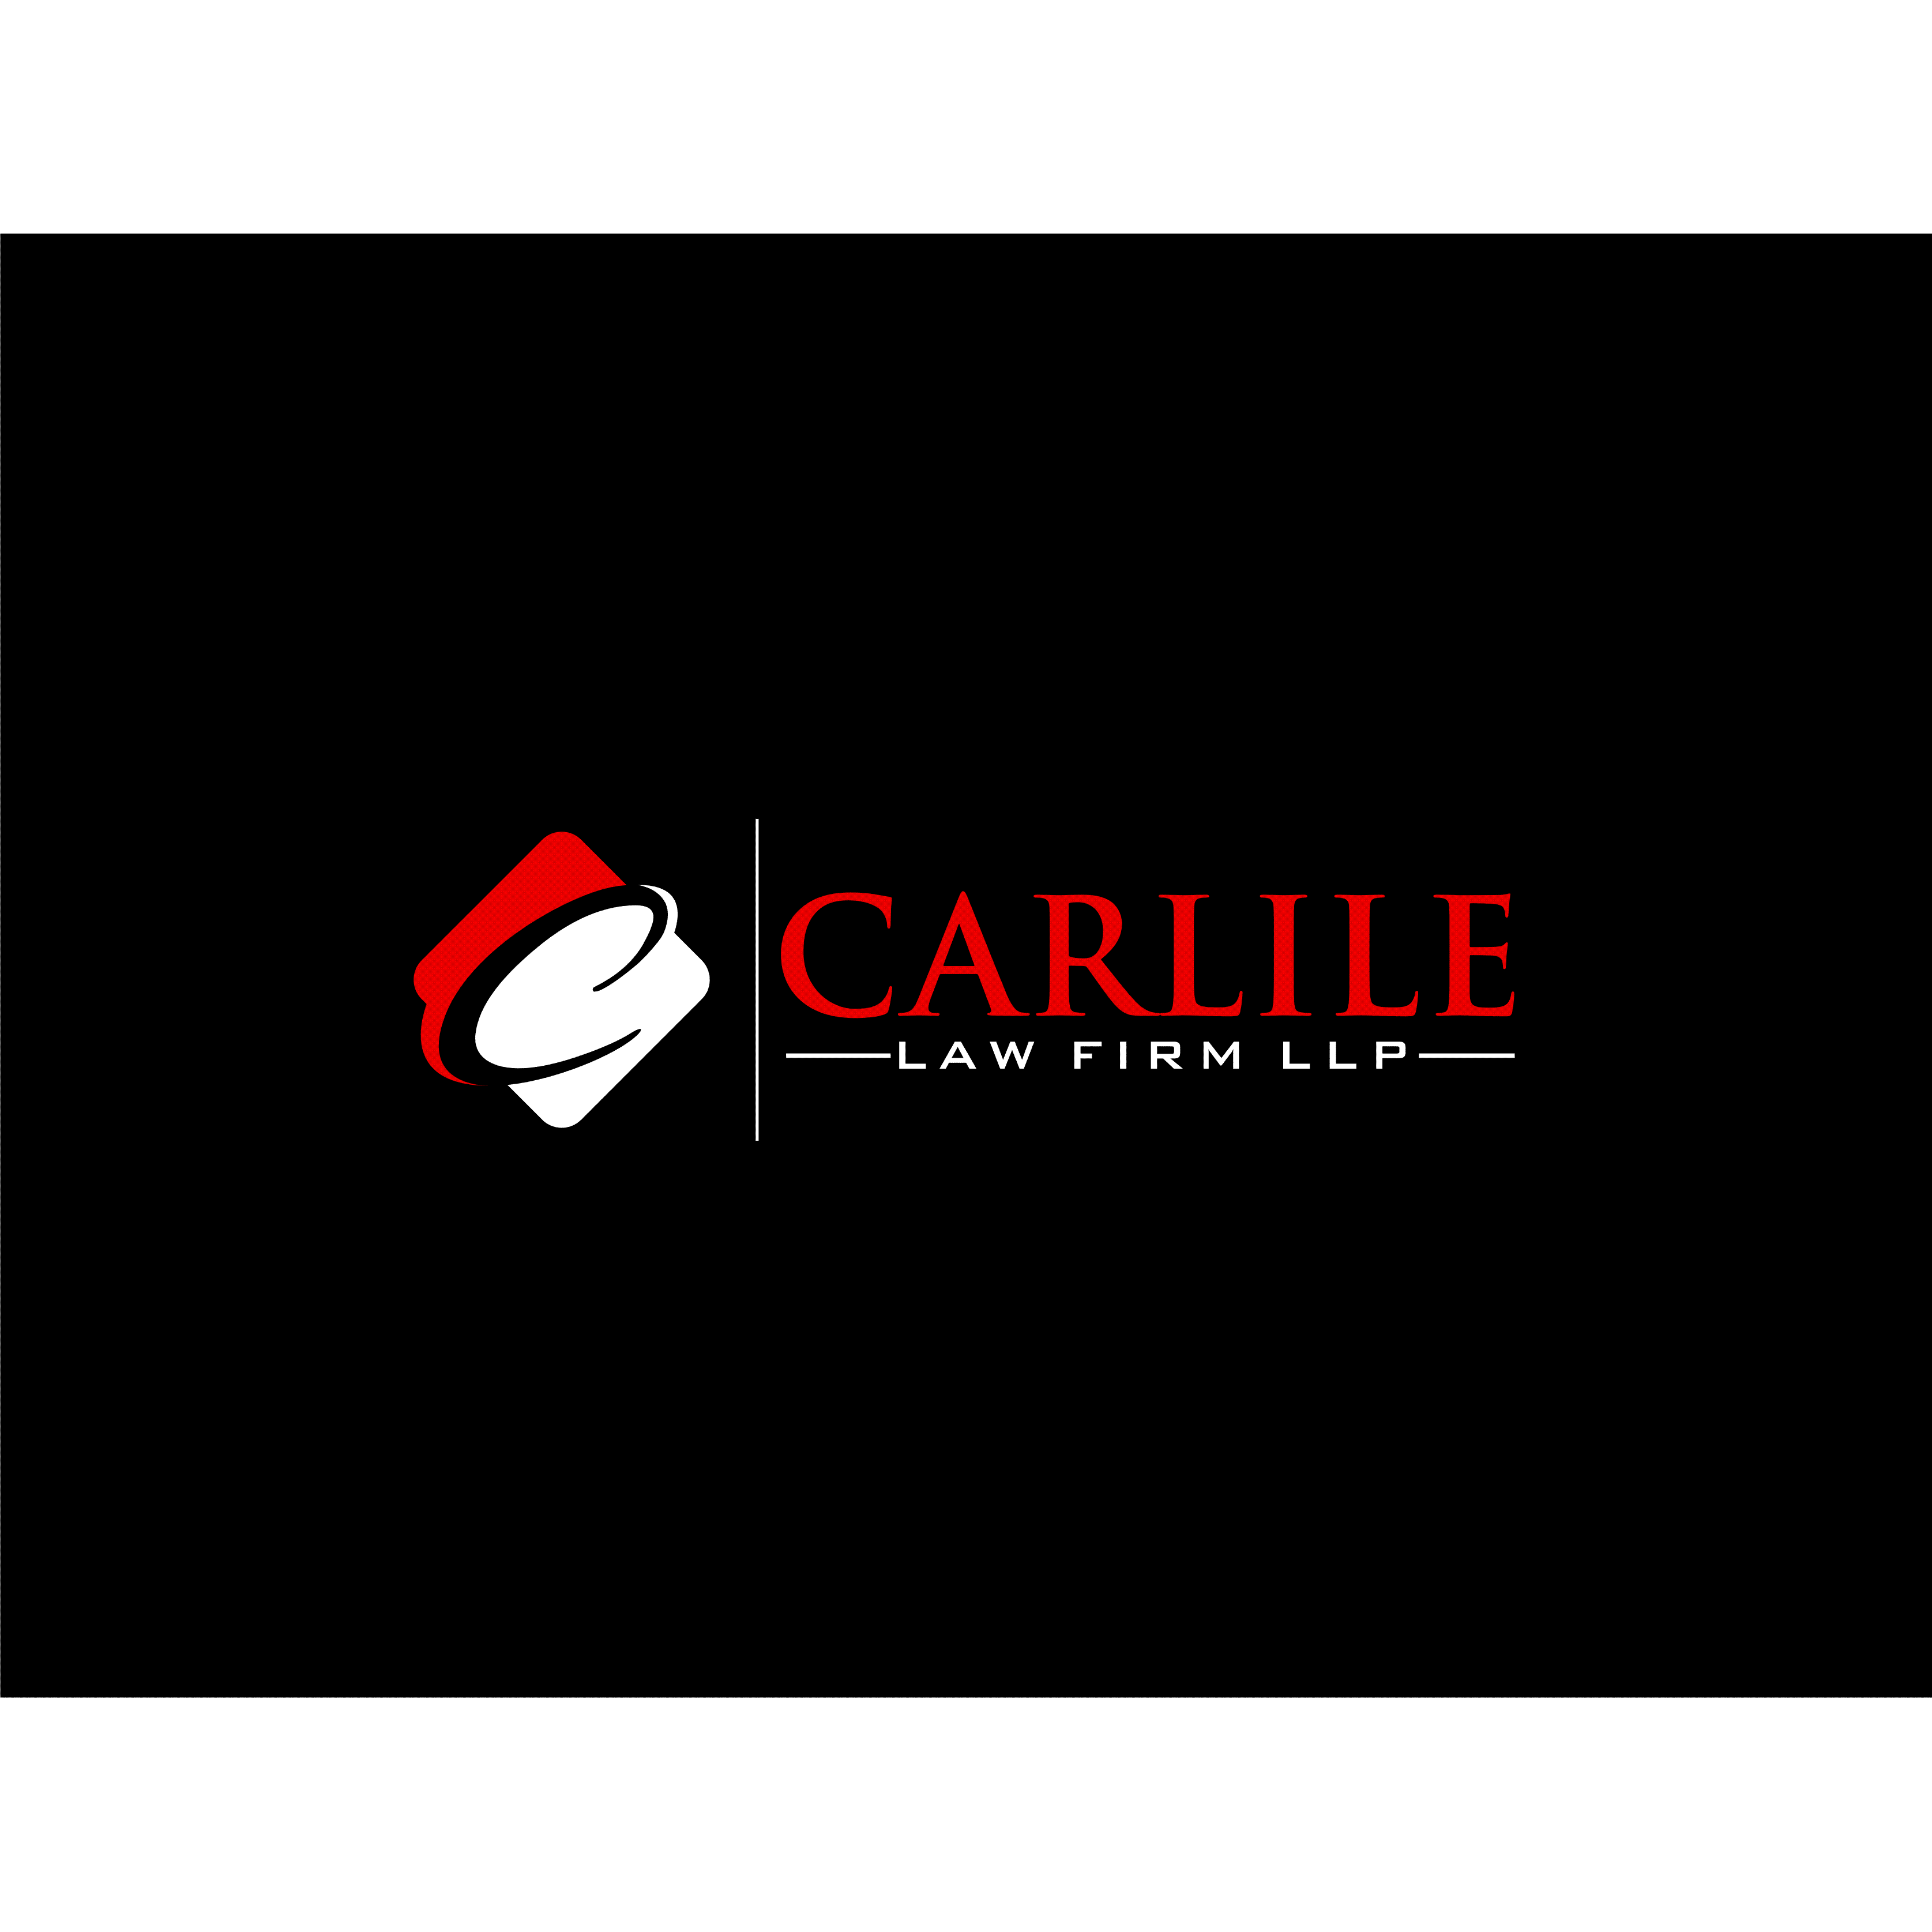 Carlile Law Firm, LLP - ad image